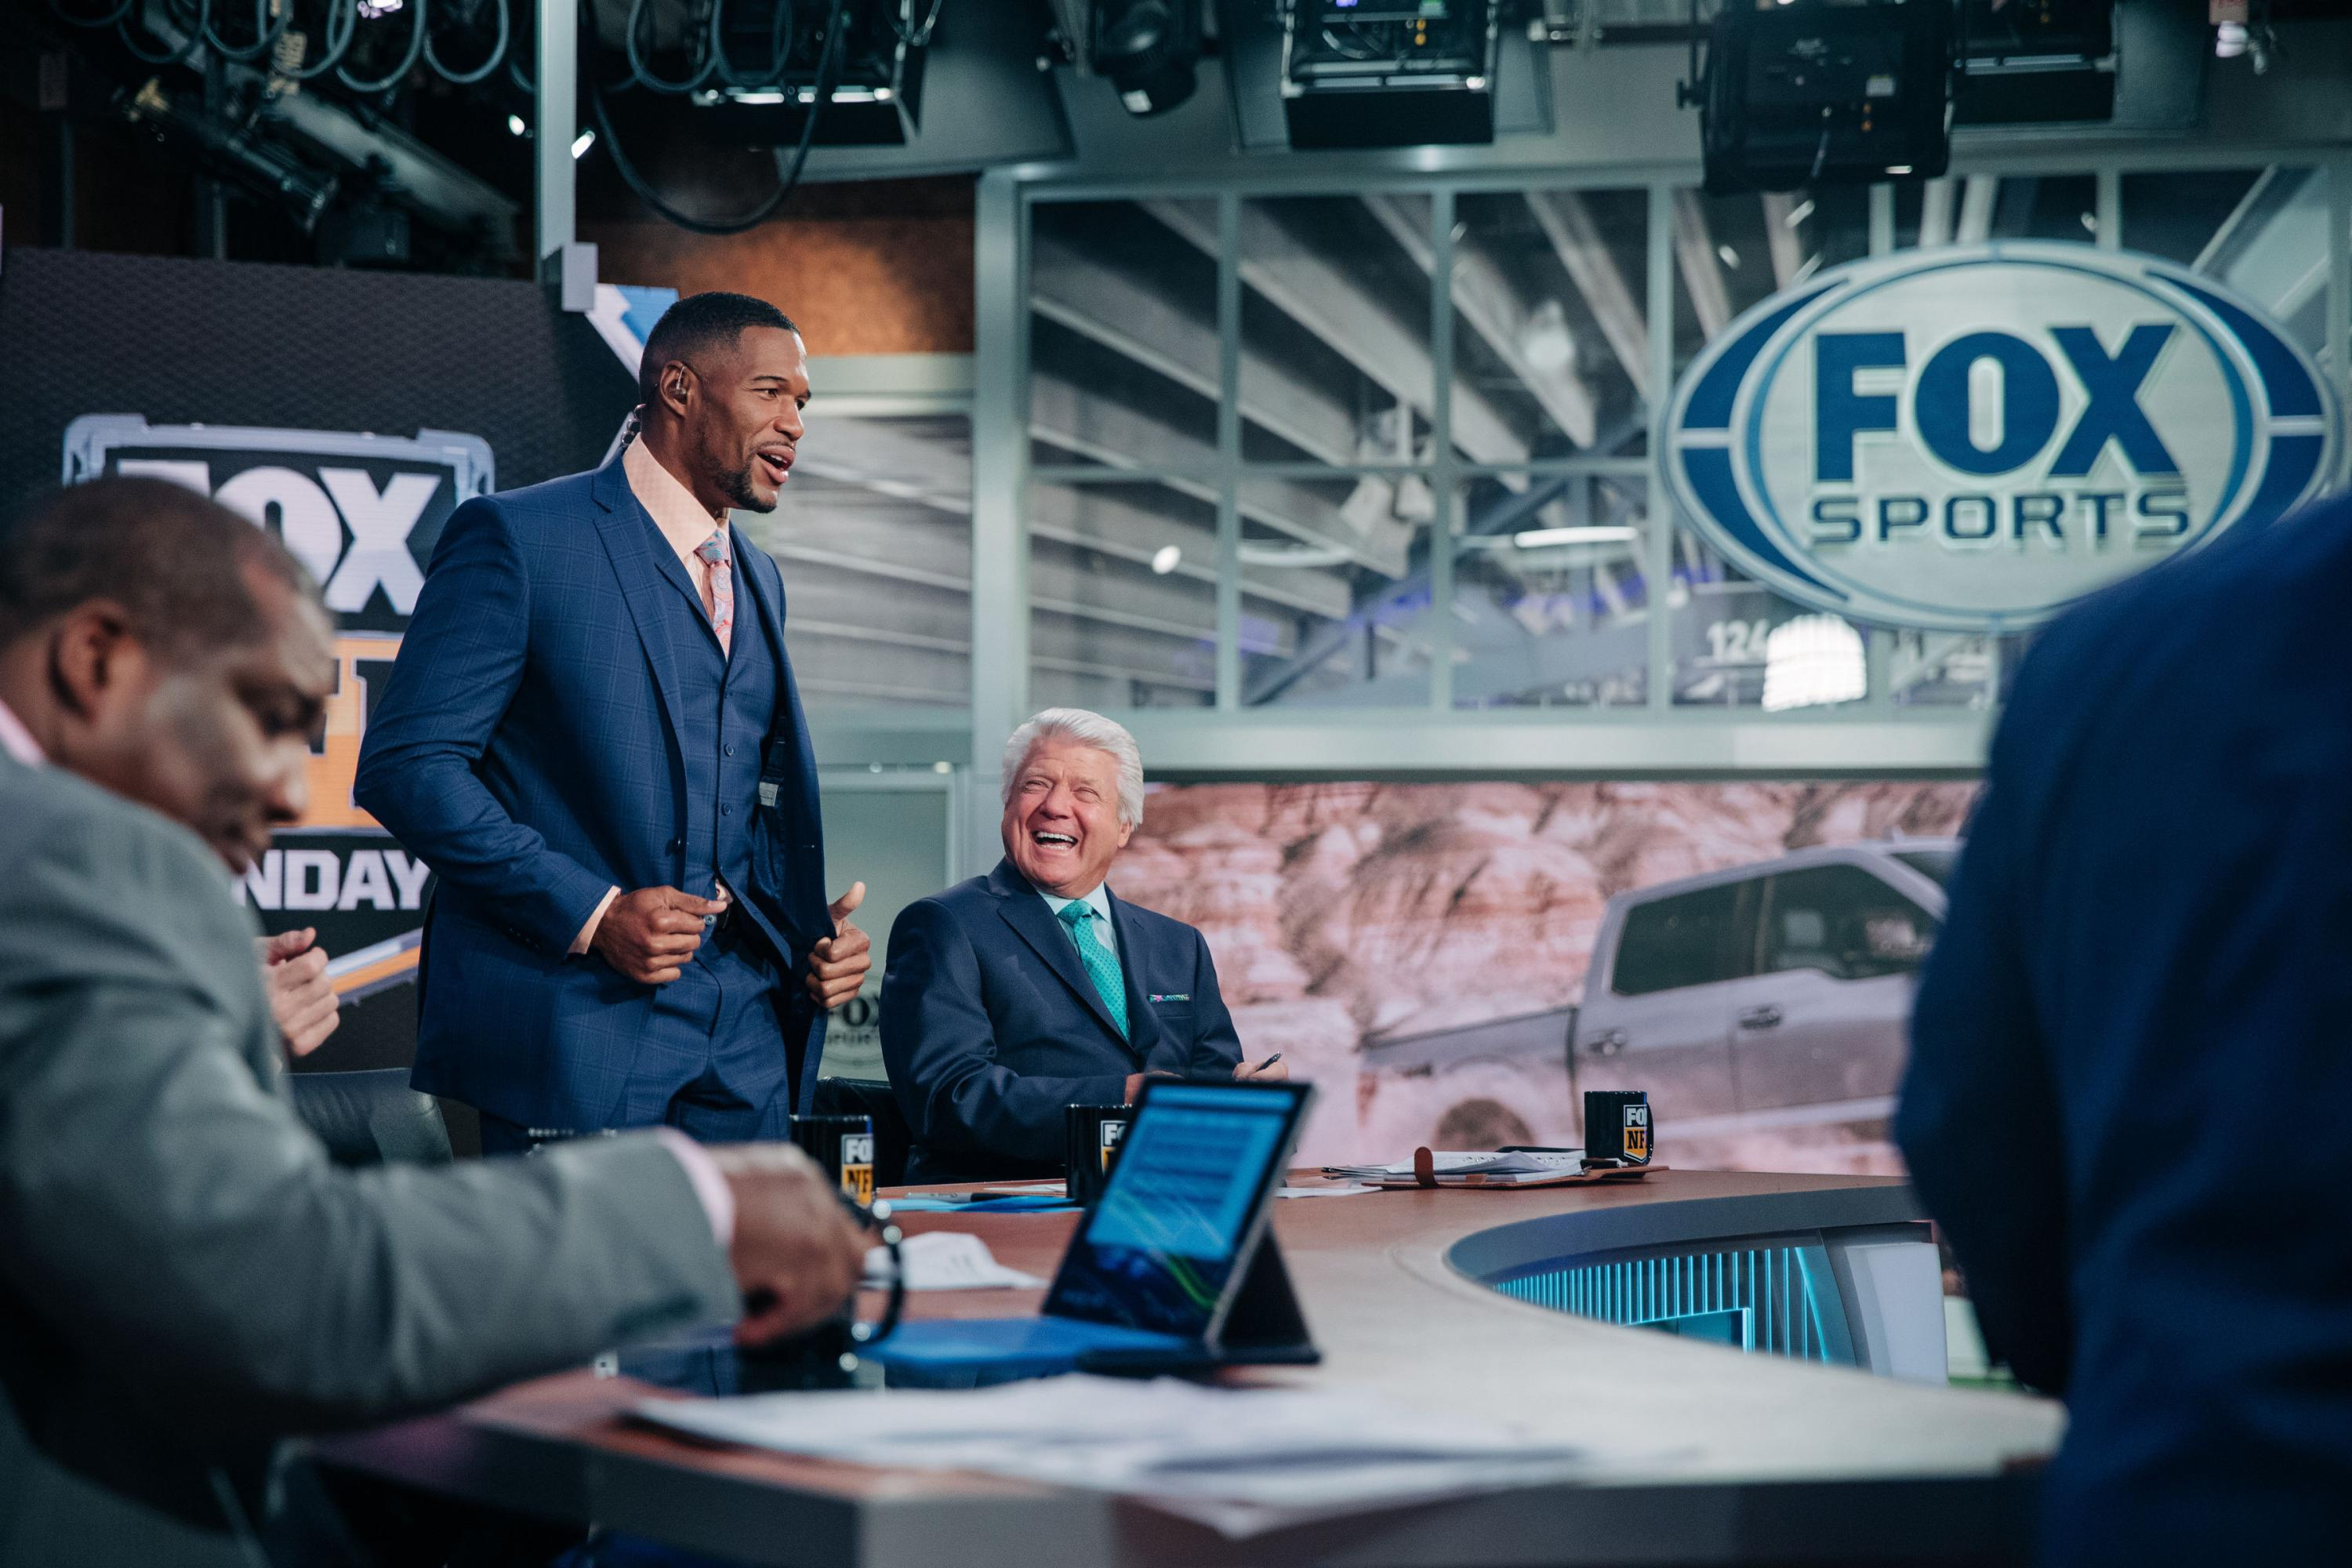 Mediahub named media AOR for Fox Sports, Fox Entertainment